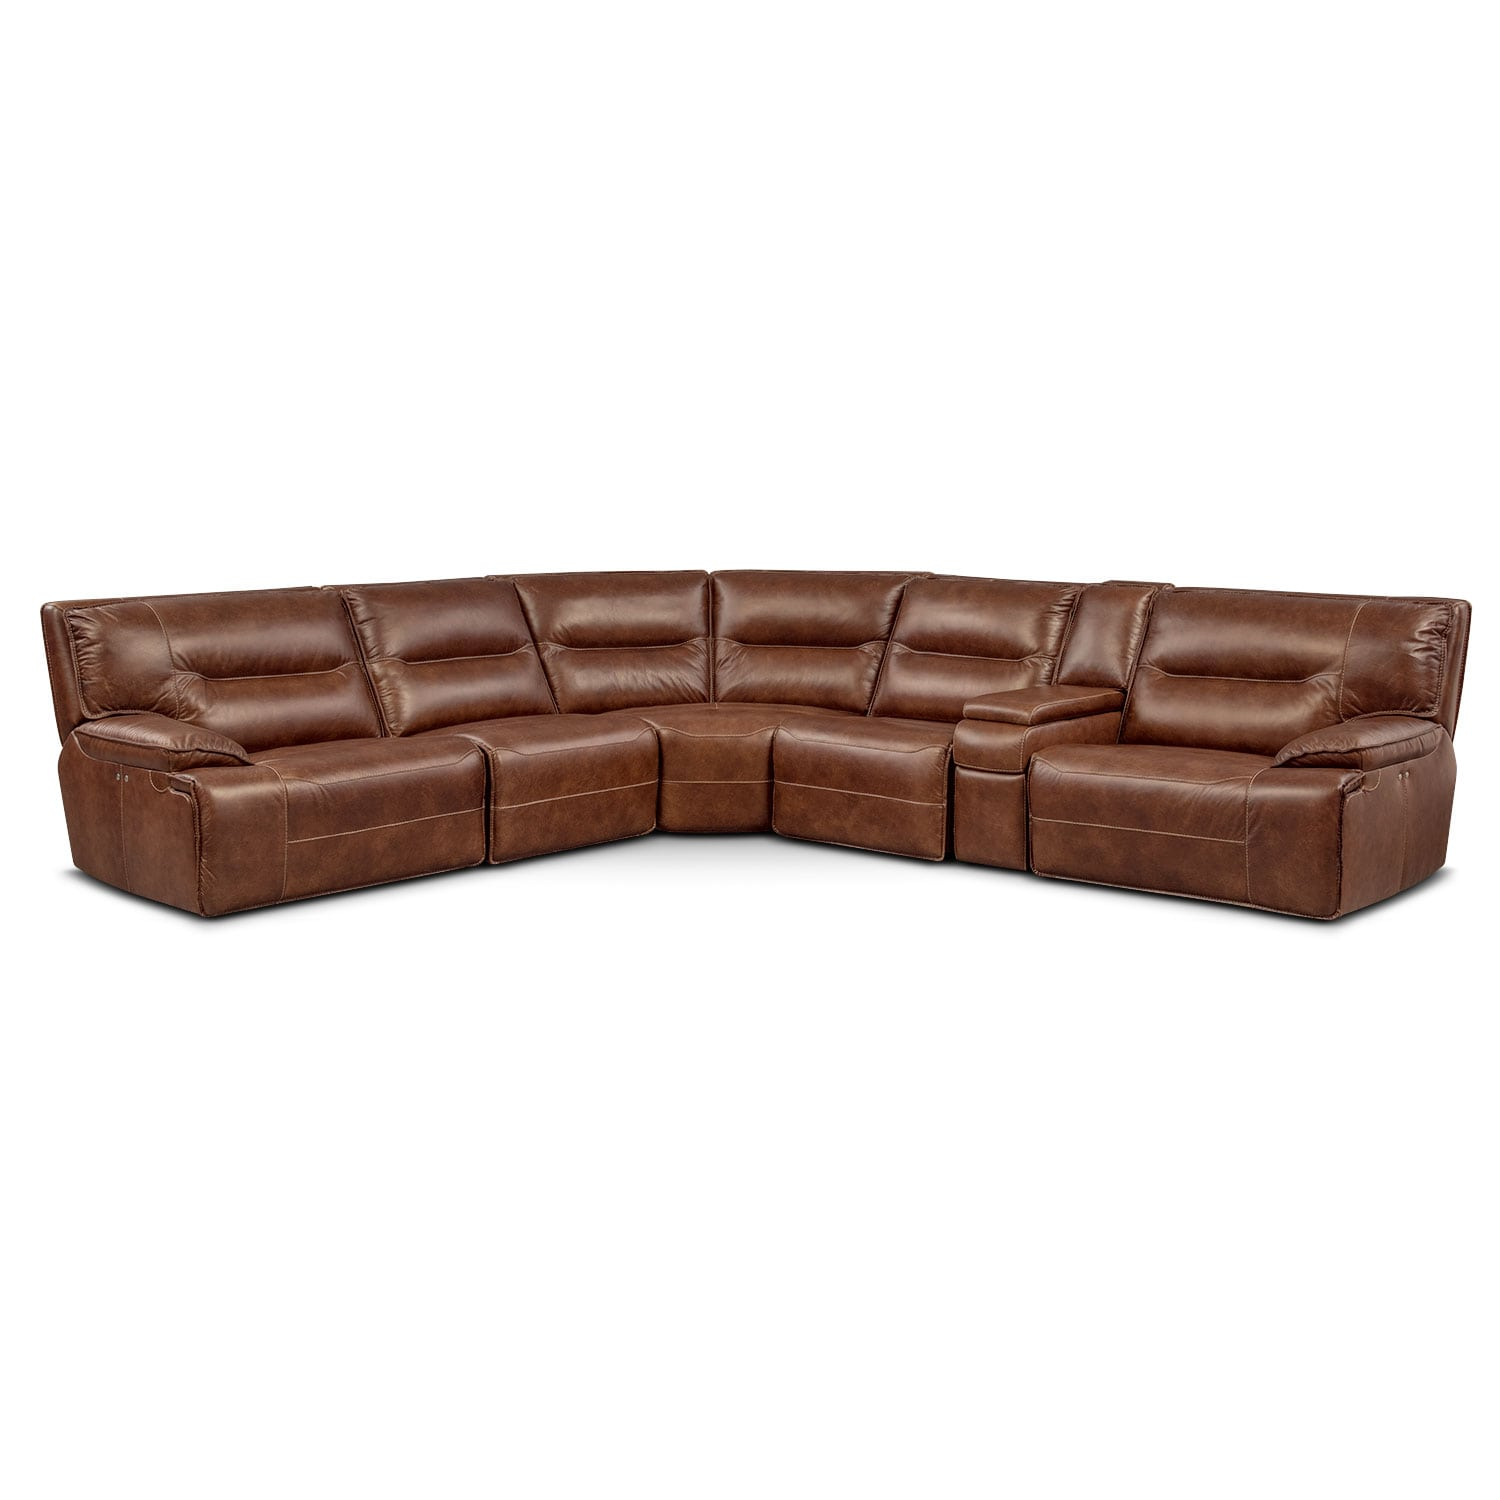 Living Room Furniture - Glenmont 6-Piece Power Reclining Sectional with 2 Power Recliners - Brown